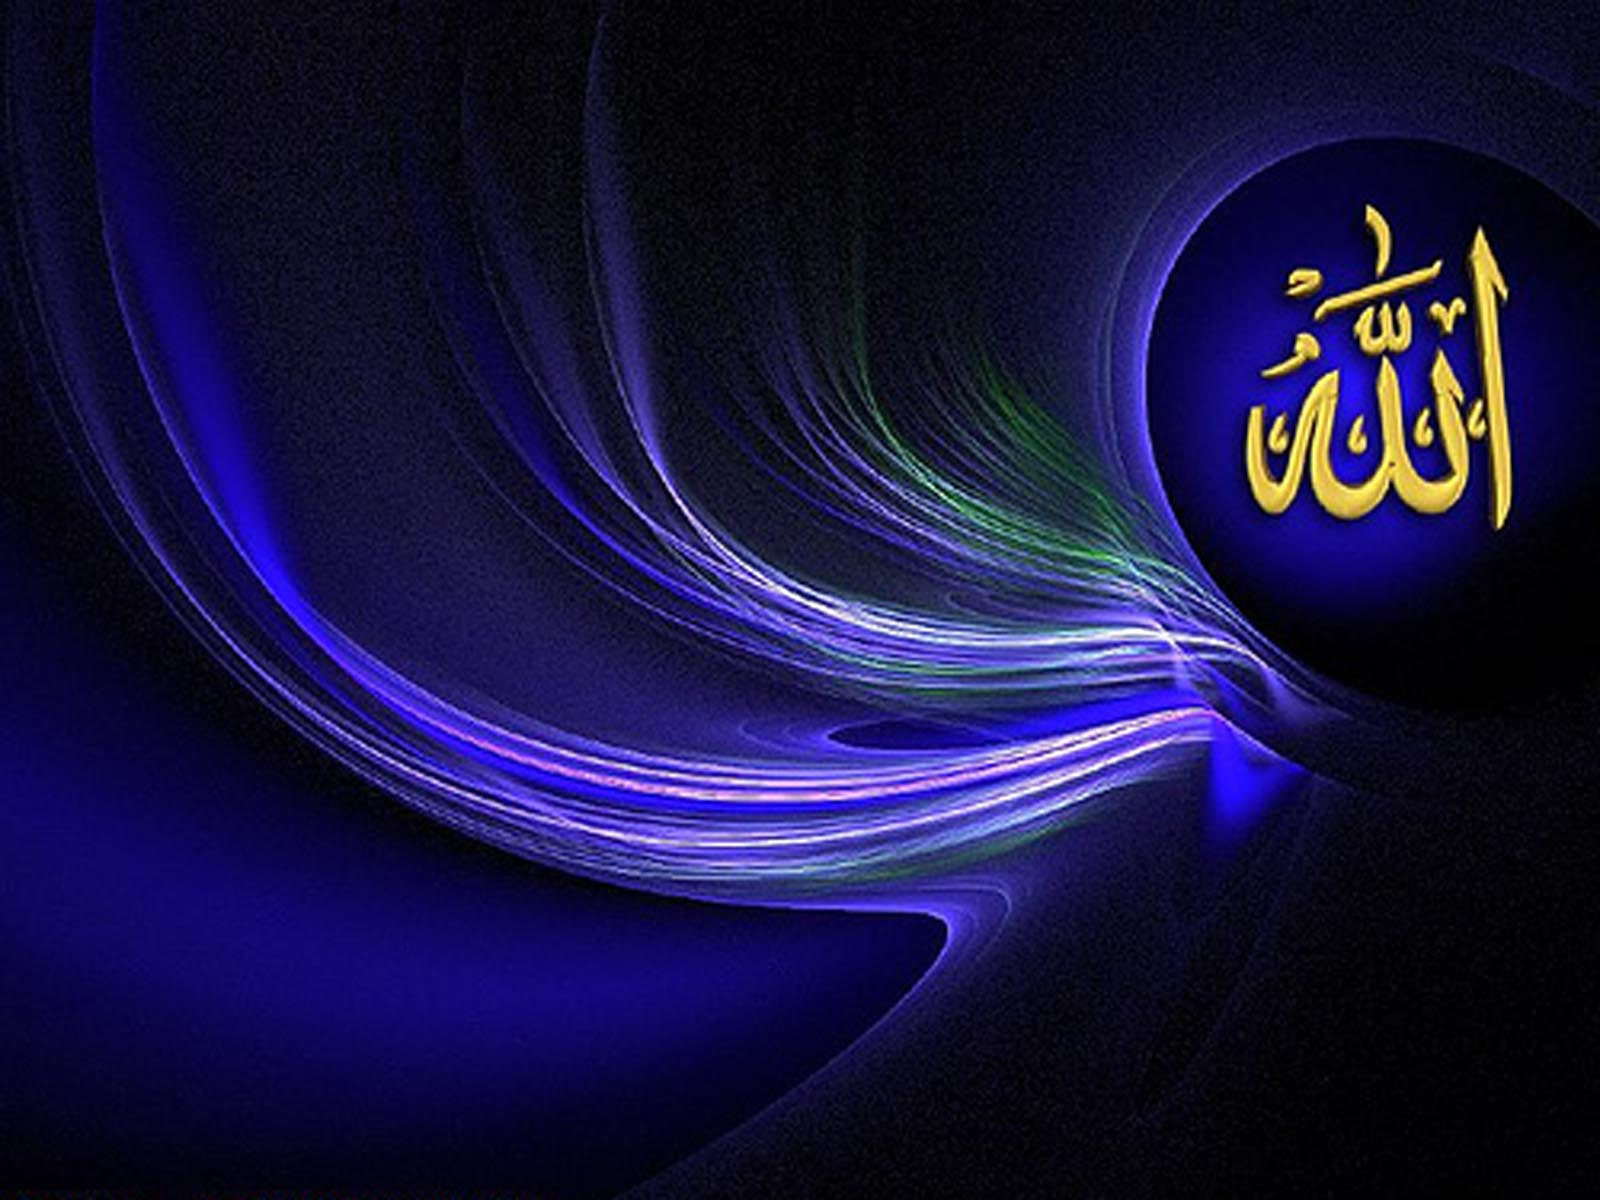 All in one computer mobiles software keys islamic wallpapers others wallpapers videos - Name wallpapers free download ...